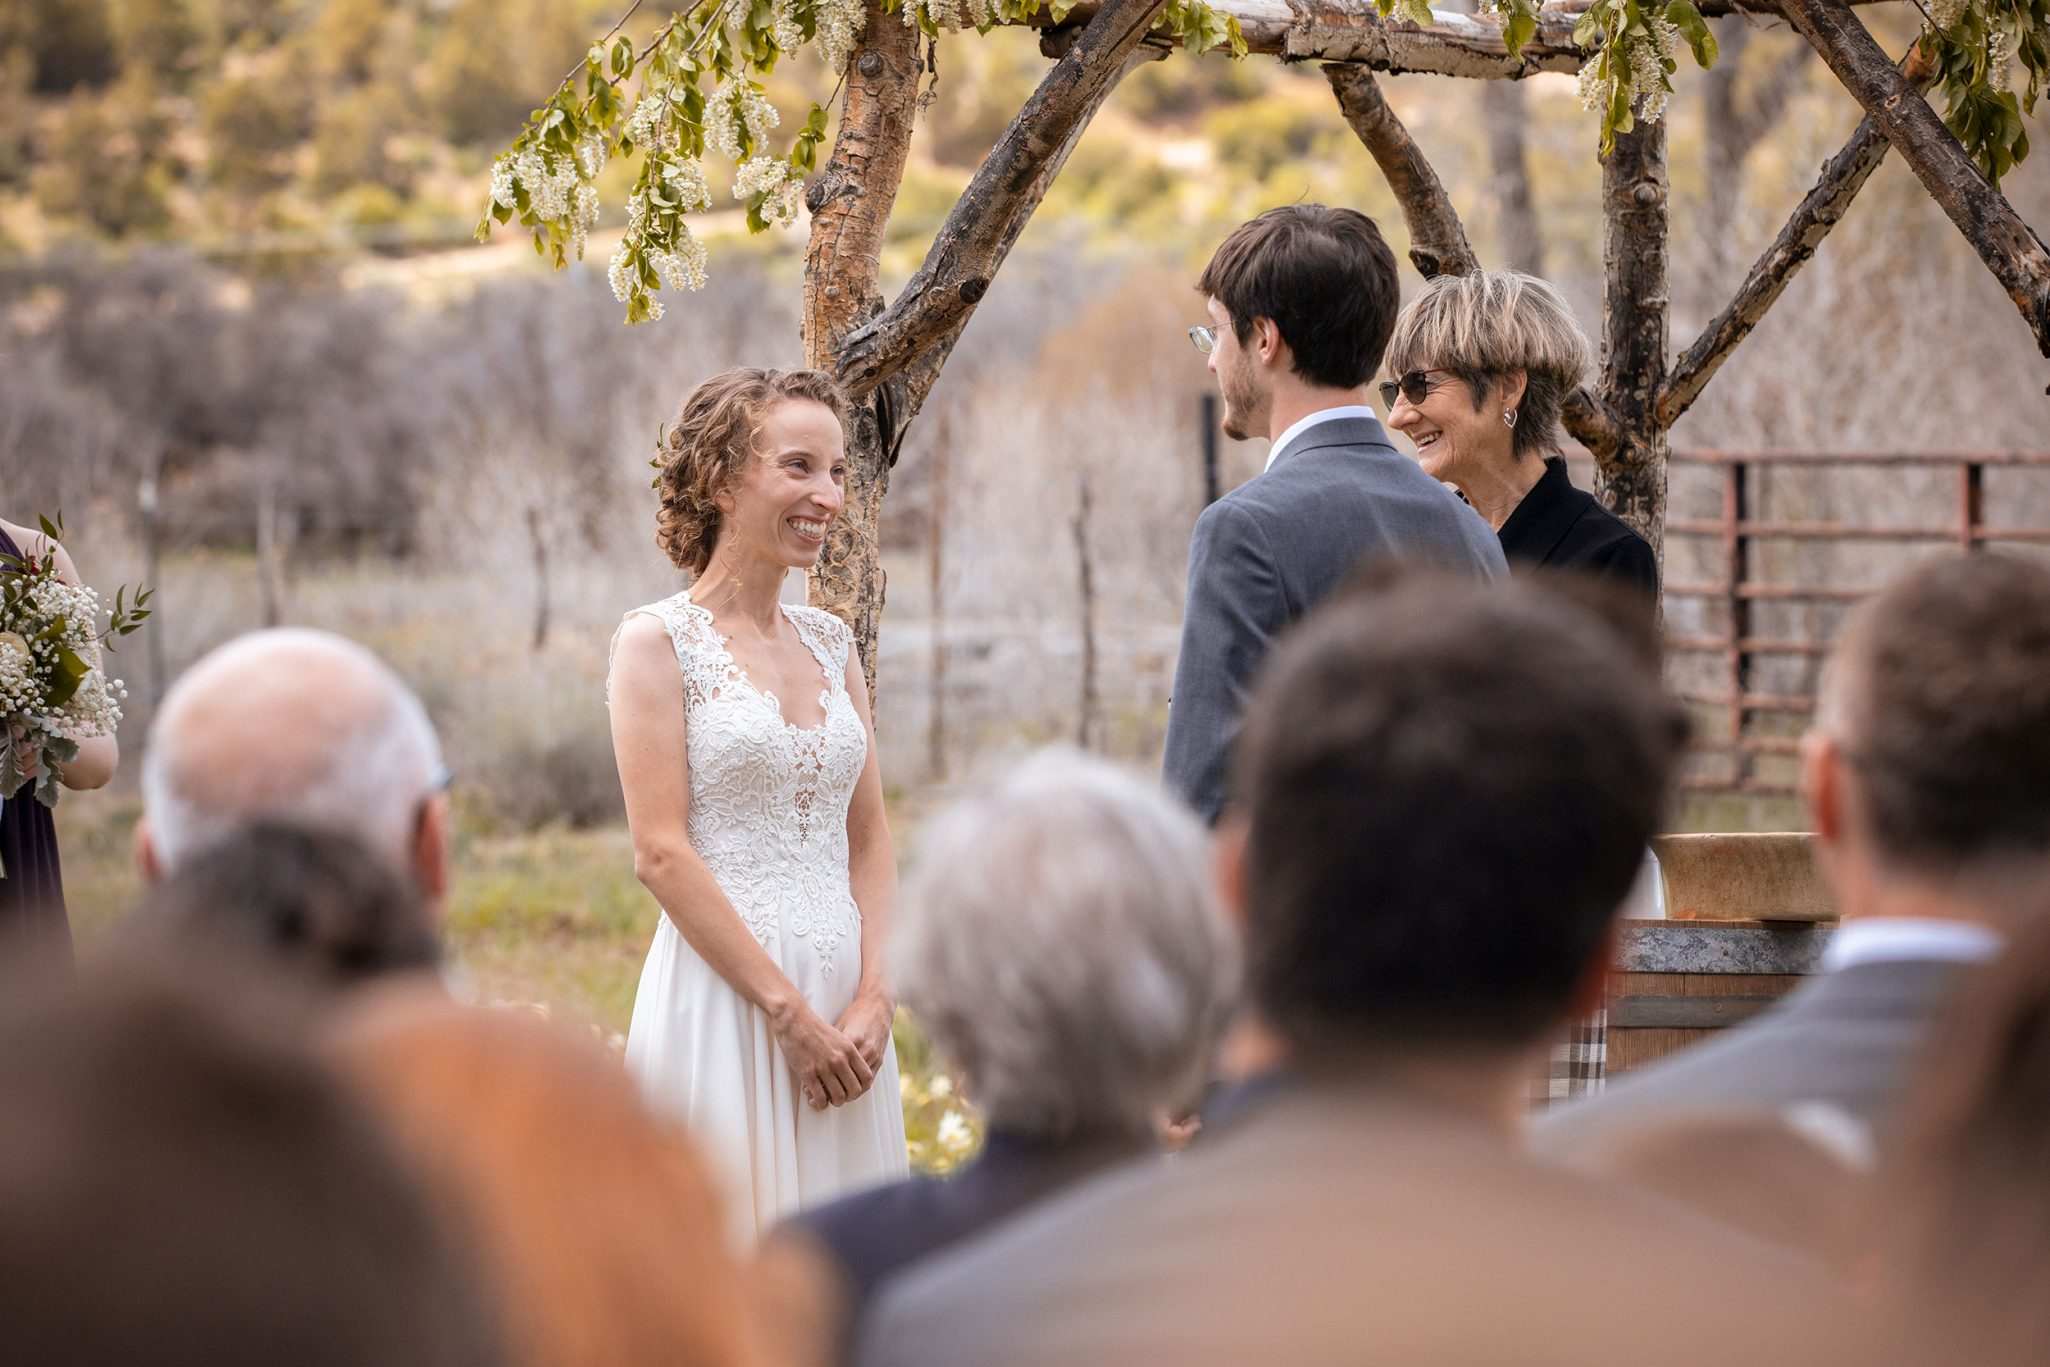 A spring ceremony at Ridgewood Event Center by Kara Cavalca